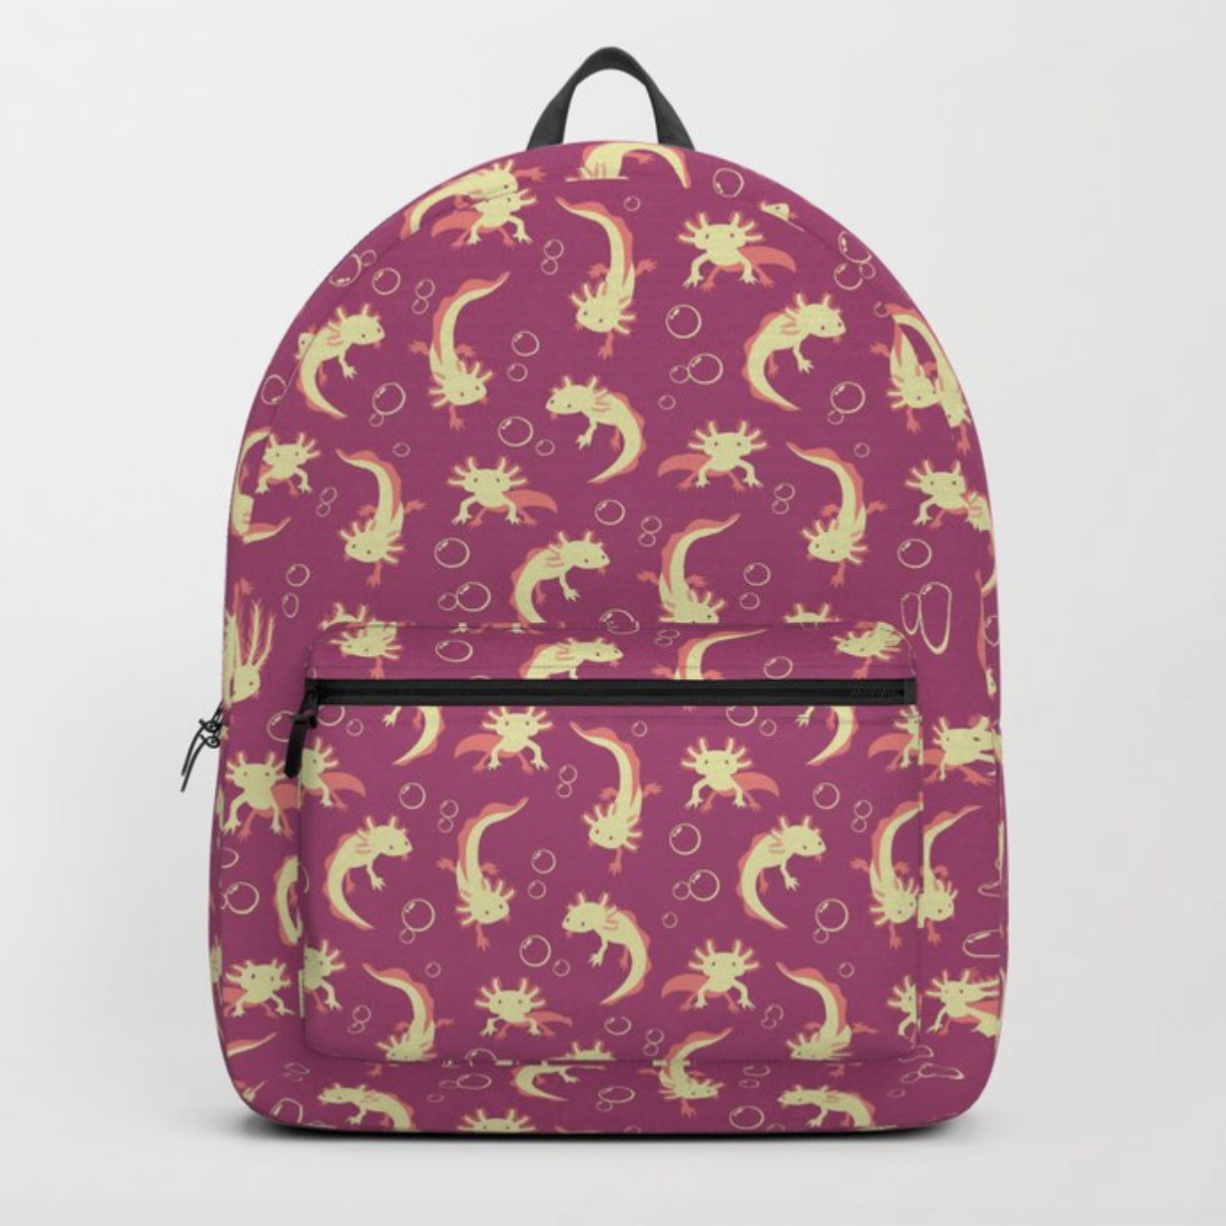 Relaxolotl rose backpack from Society6